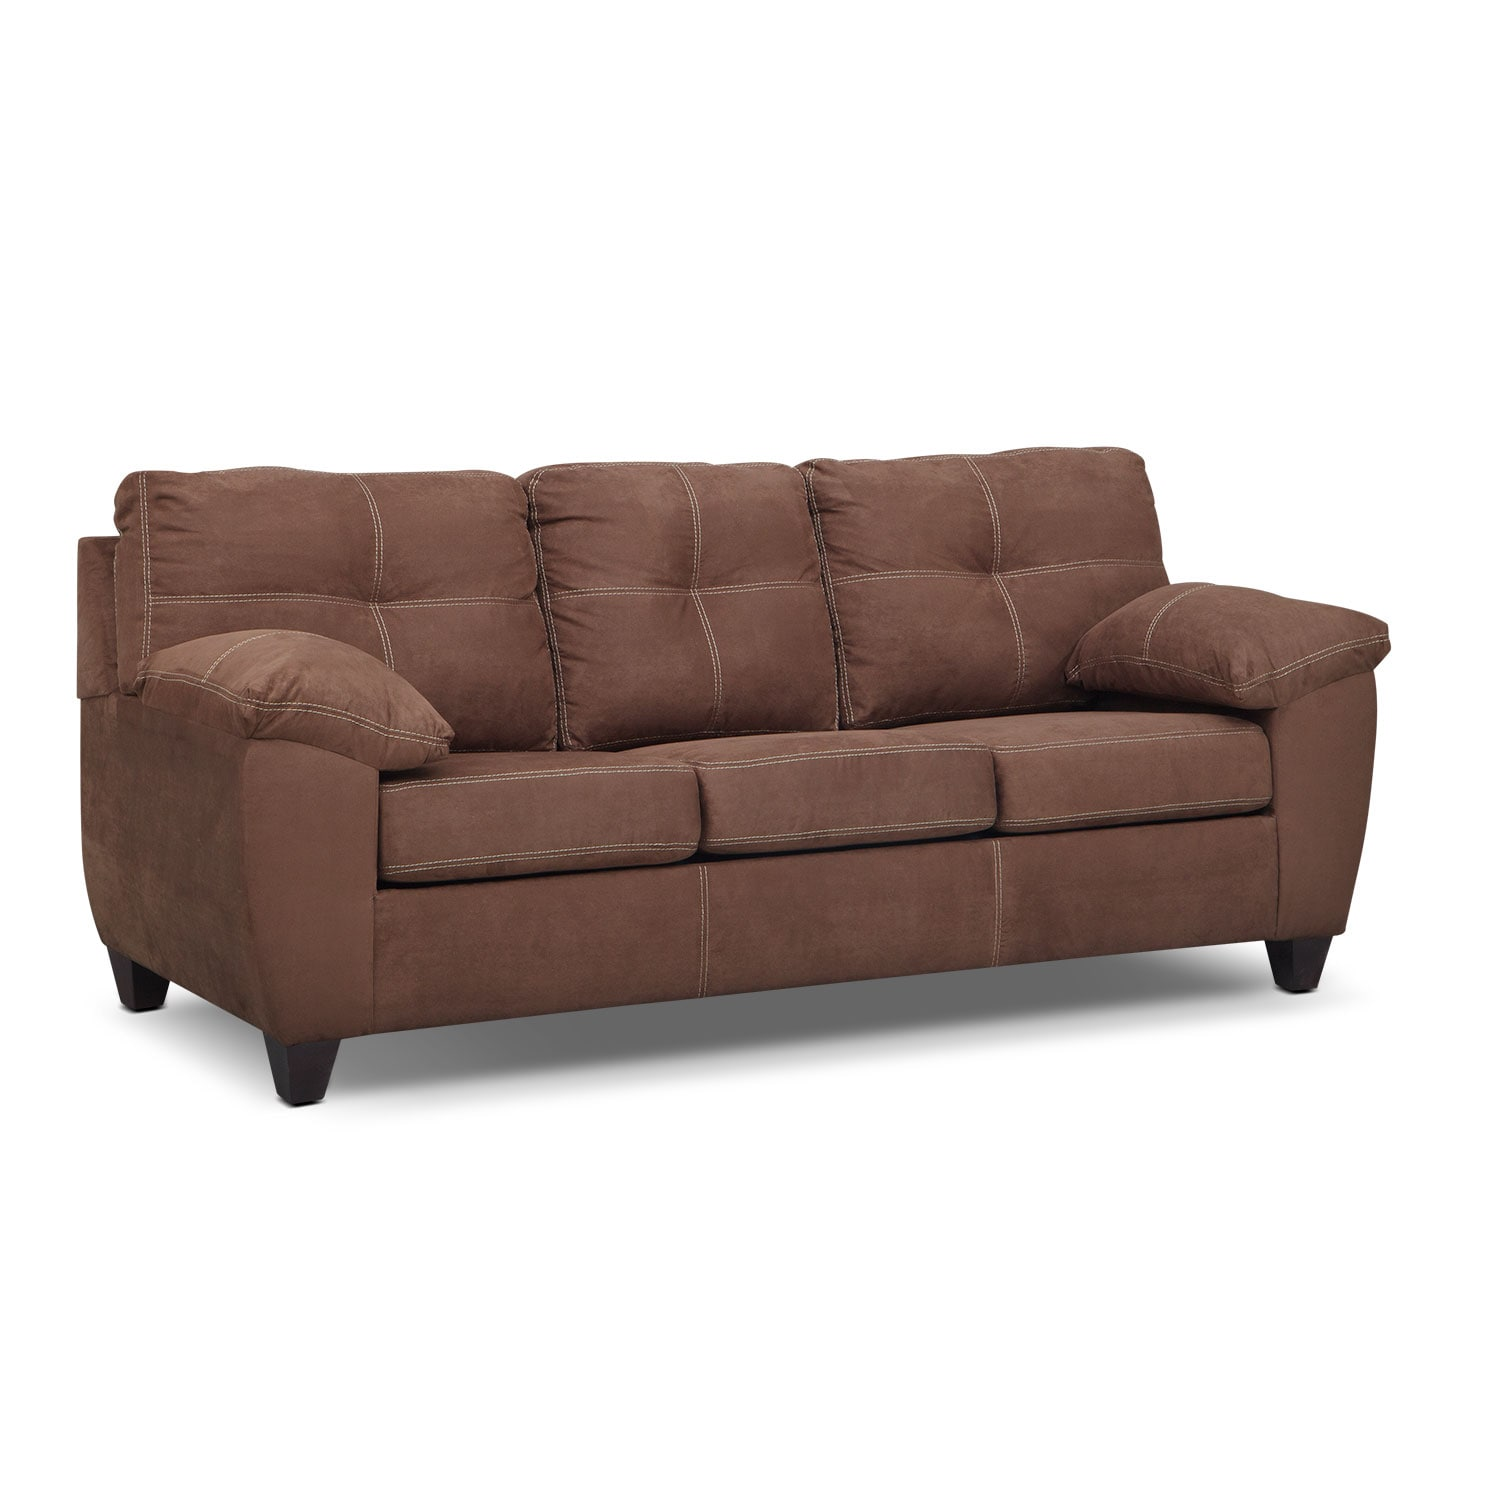 ricardo sofa coffee value city furniture and mattresses. Black Bedroom Furniture Sets. Home Design Ideas